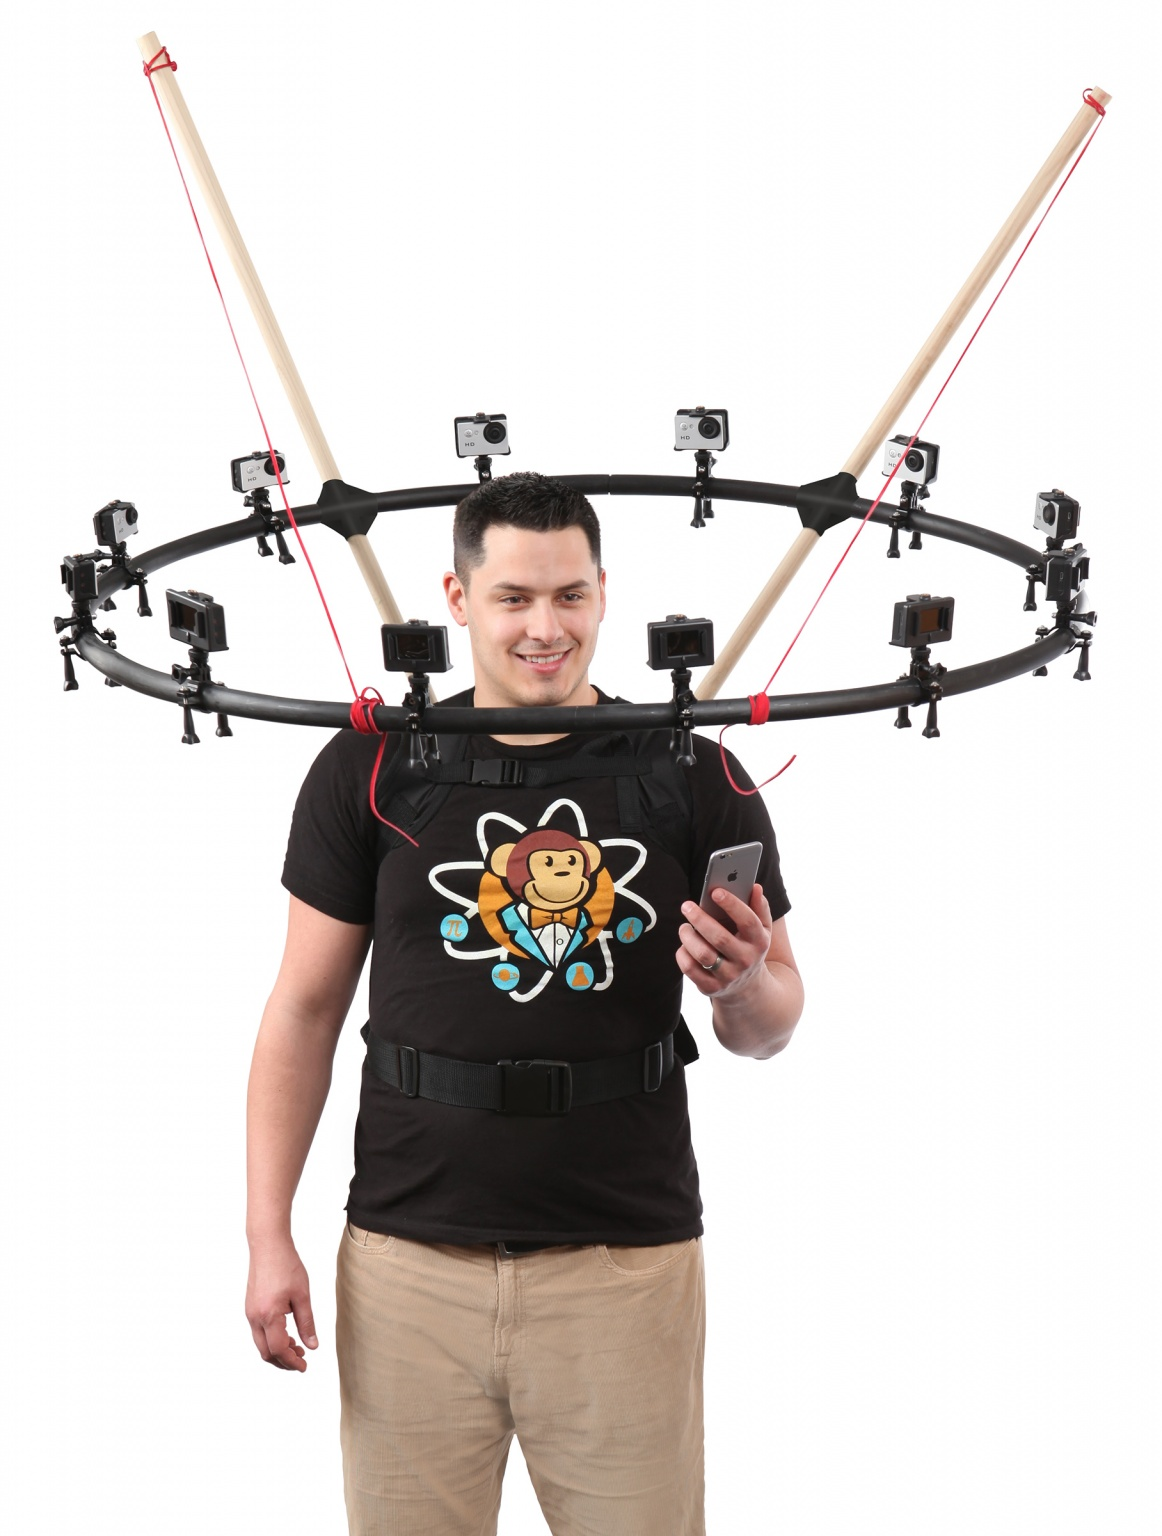 Thinkgeek Continues Notoriously Awesome April Fools Day